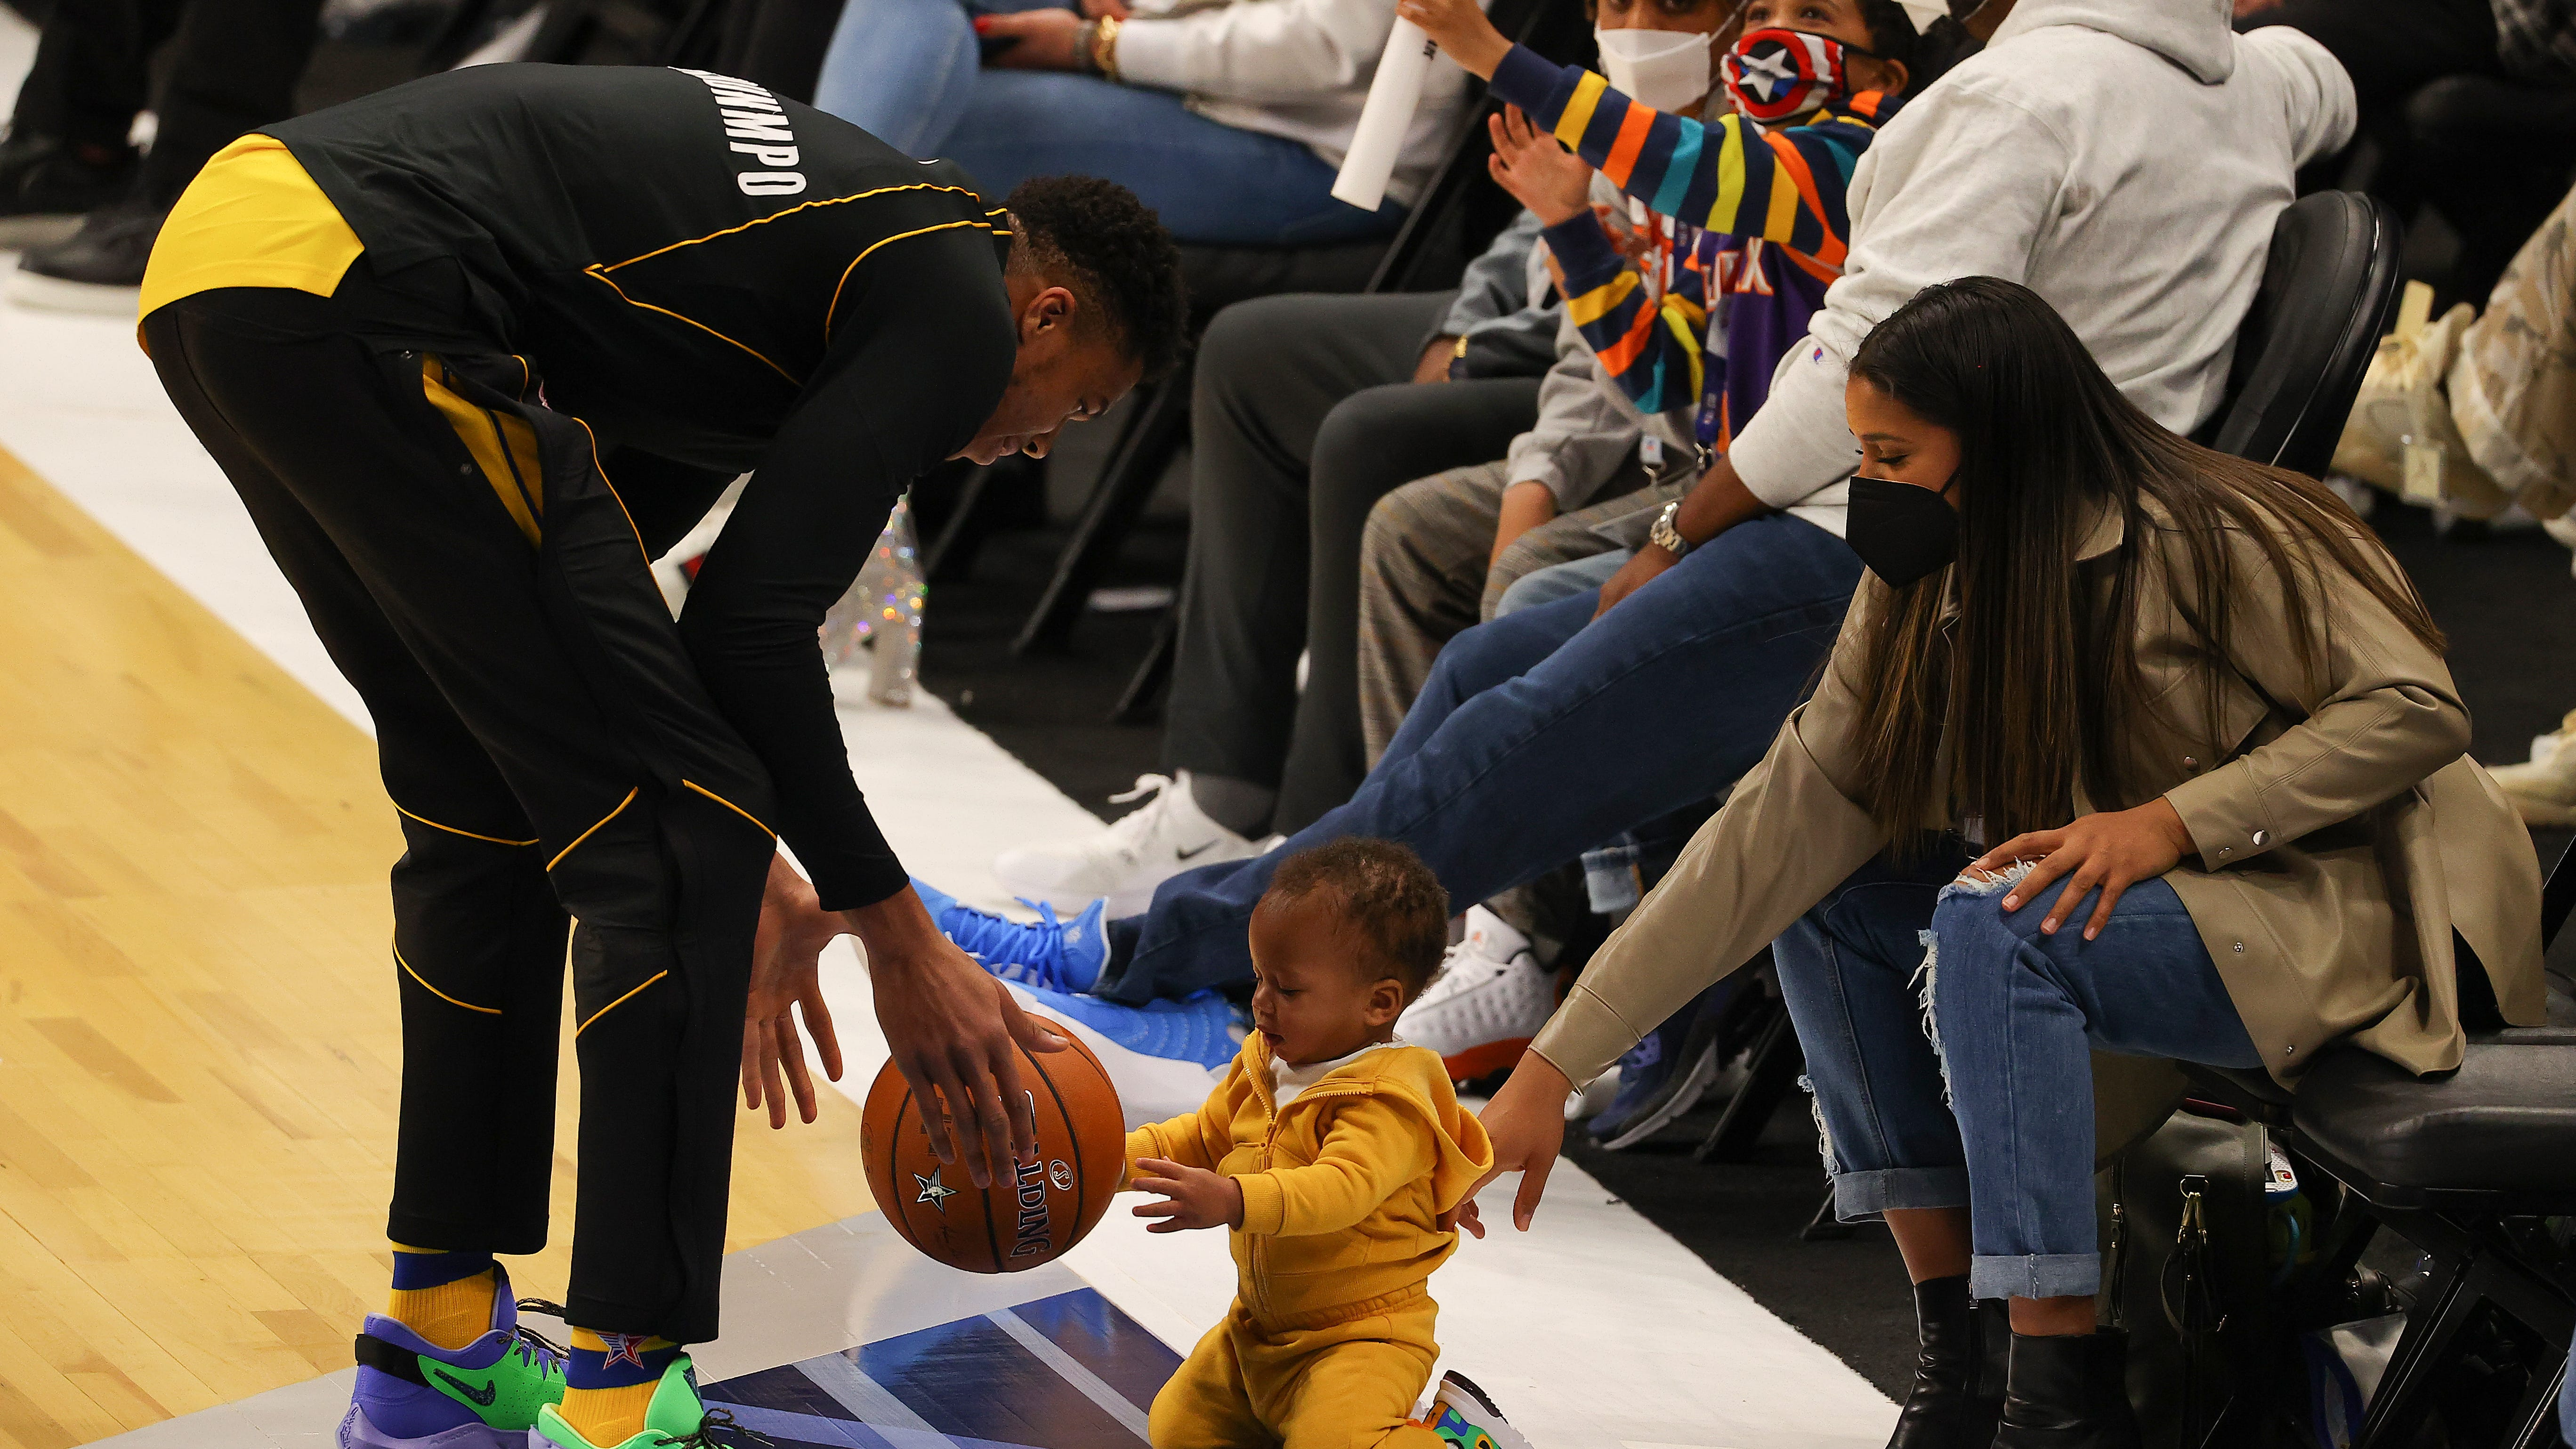 Giannis Antetokounmpo And Son Steal Show At Nba All Star Game